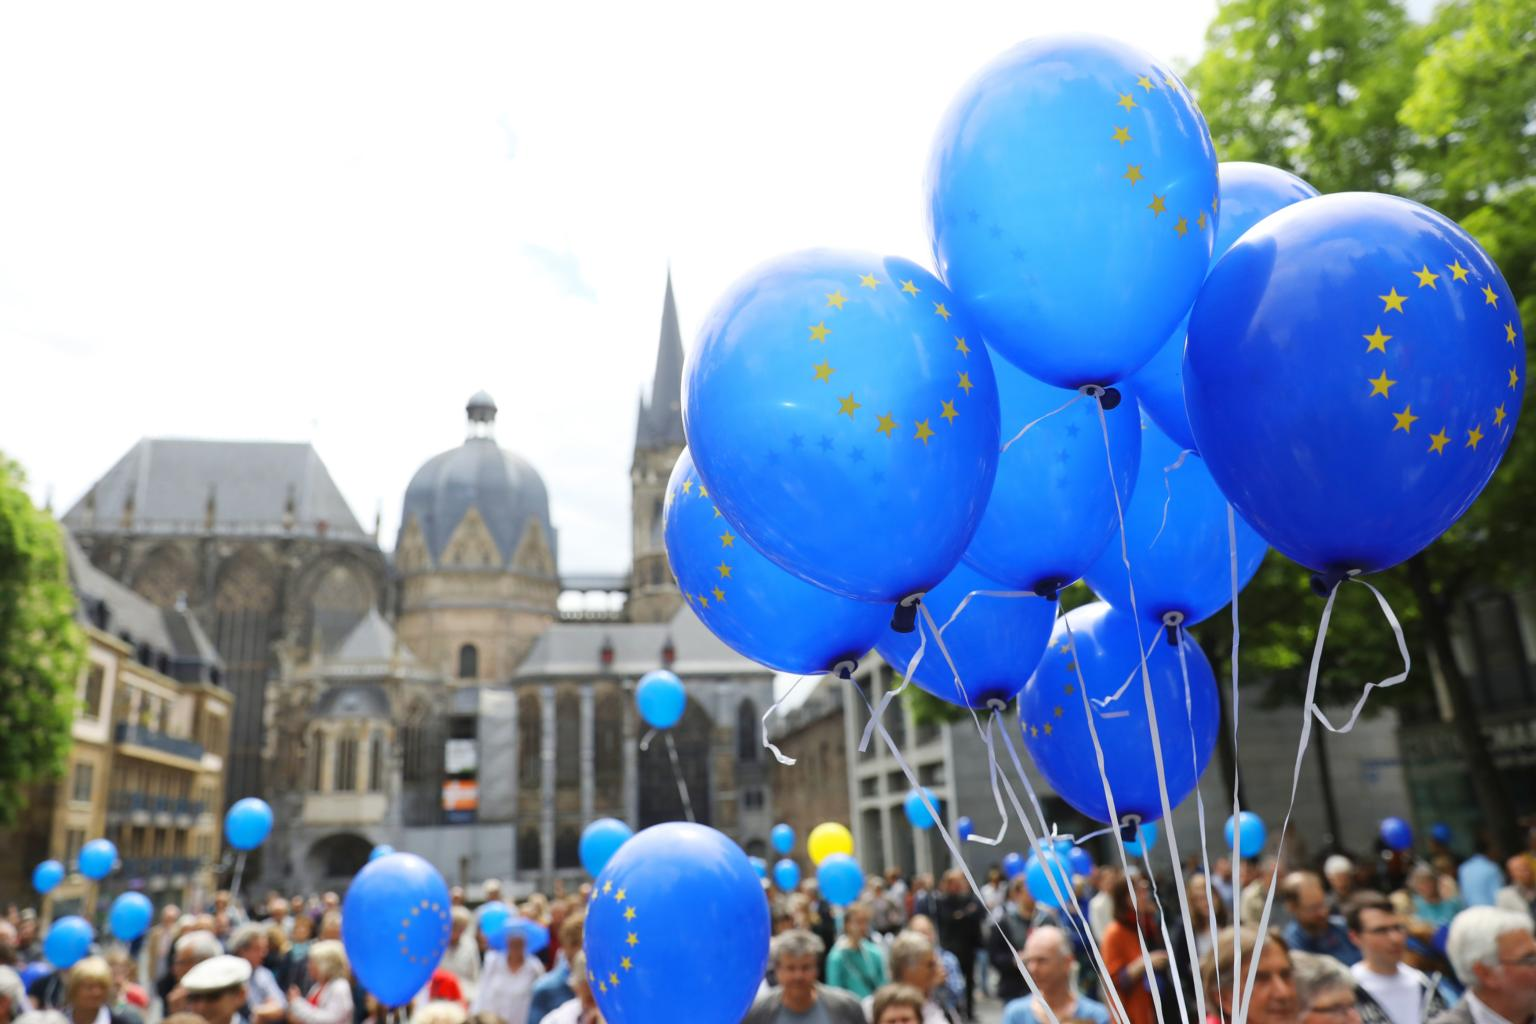 Pulse-of-Europe (c) Bistum Aachen - Andreas Steindl